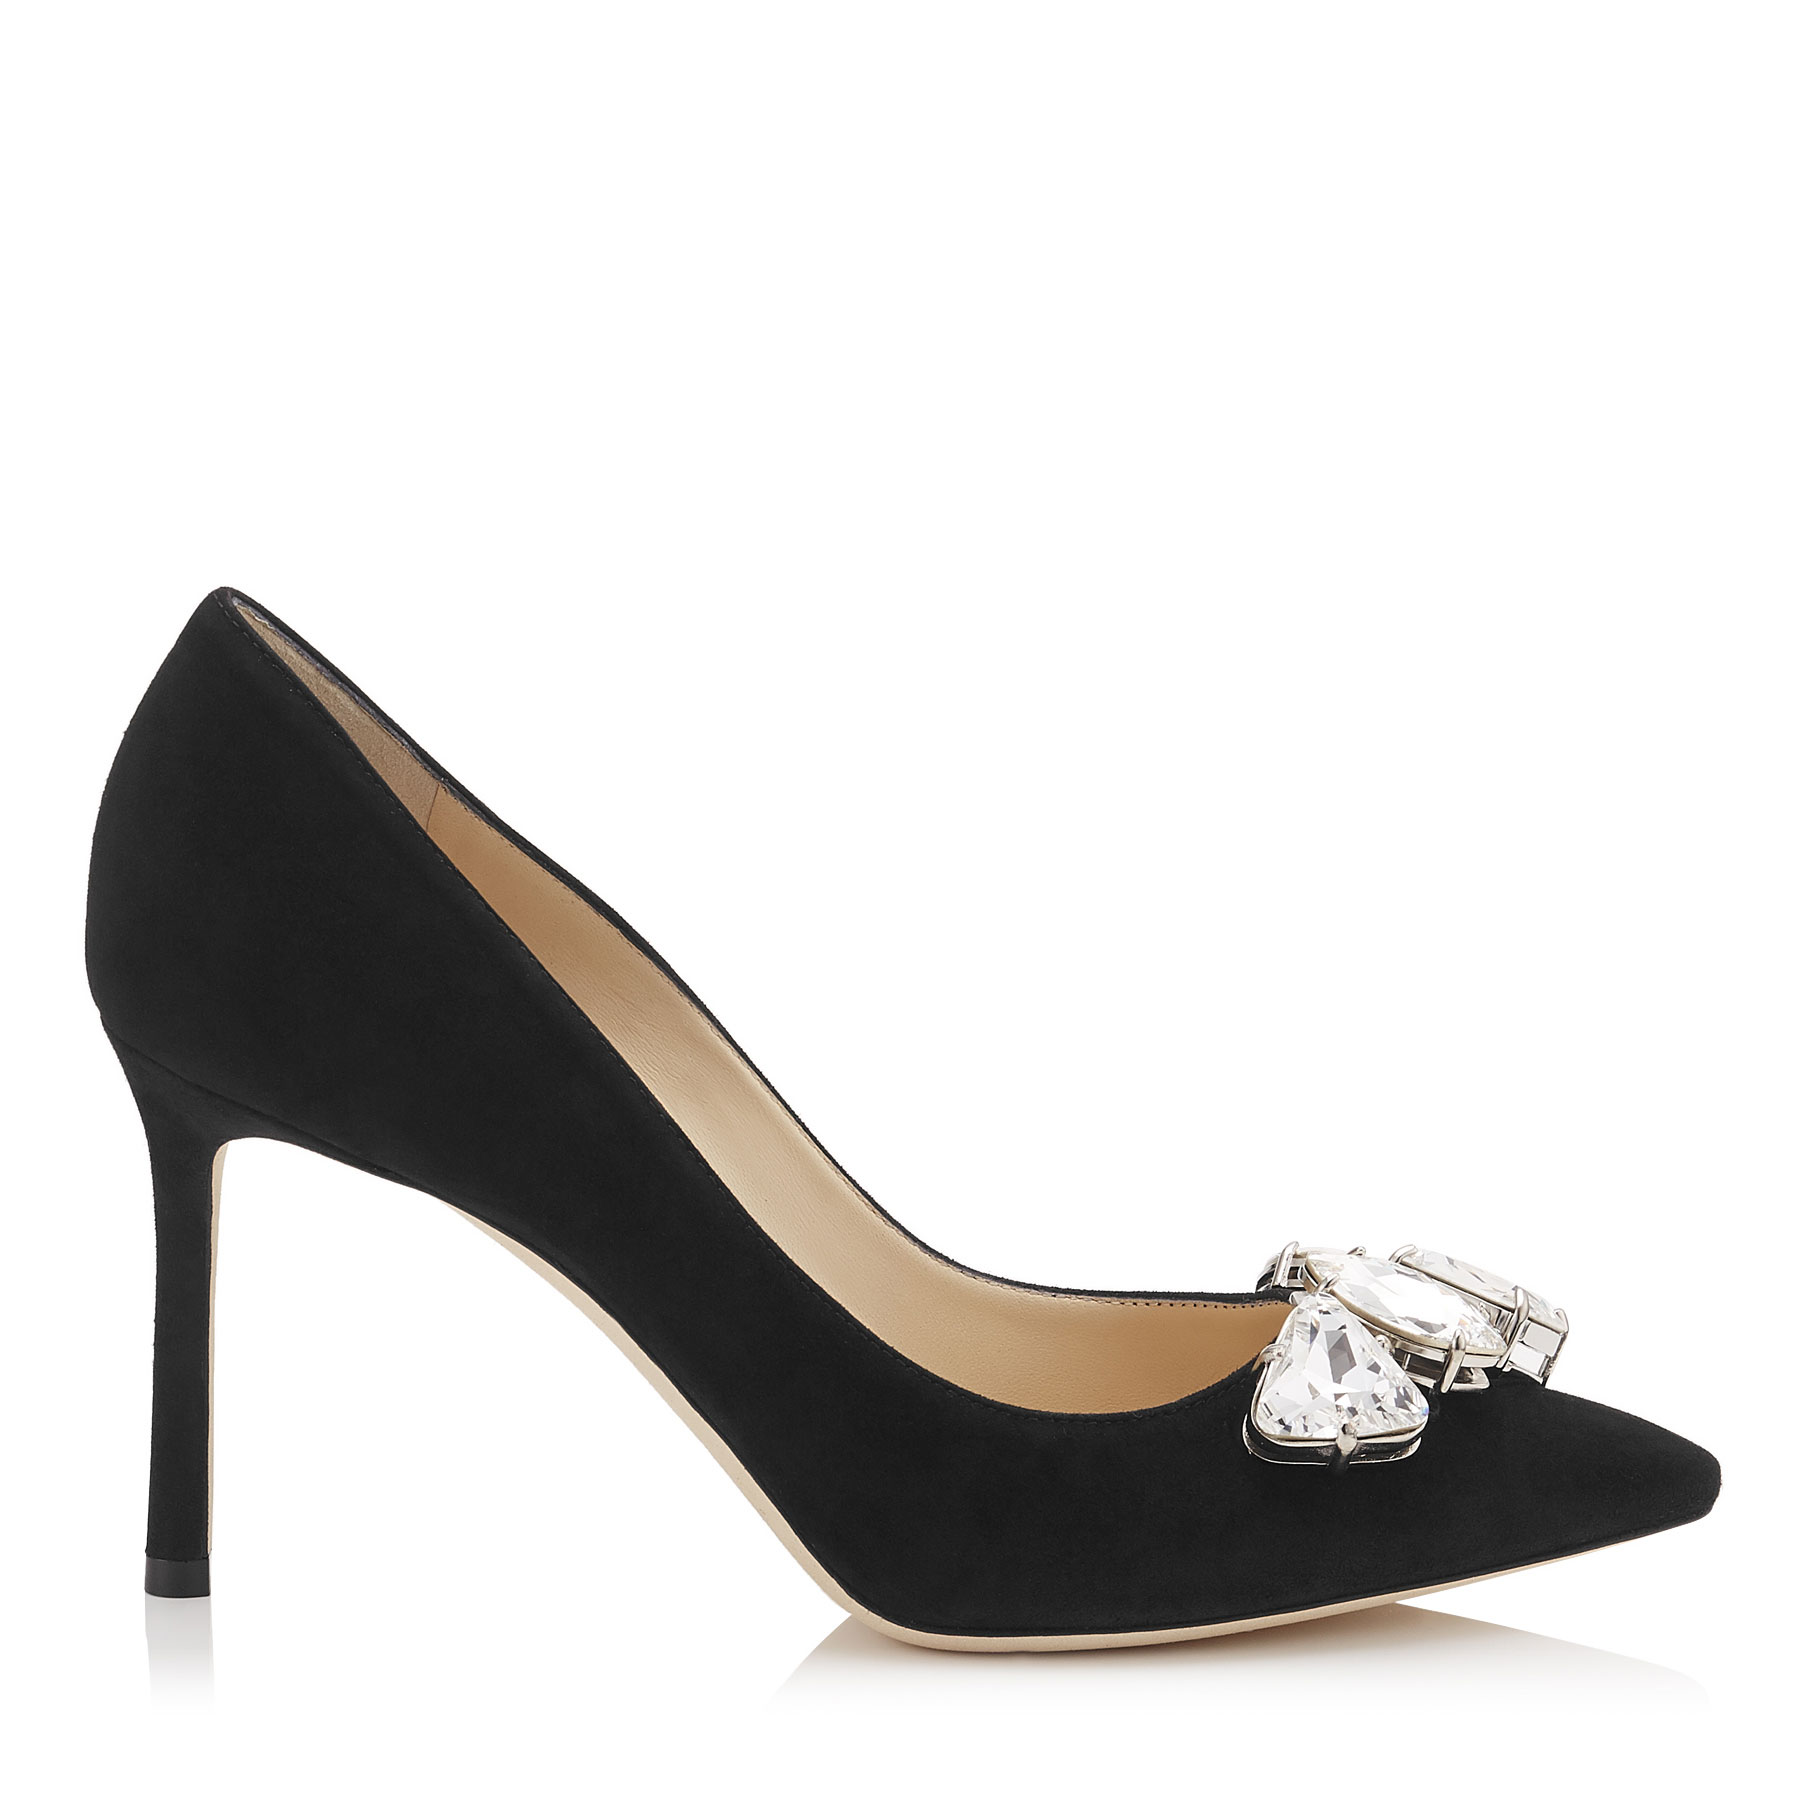 MARVEL 85 Black Suede Pointy Toe Pumps with Crystal Piece